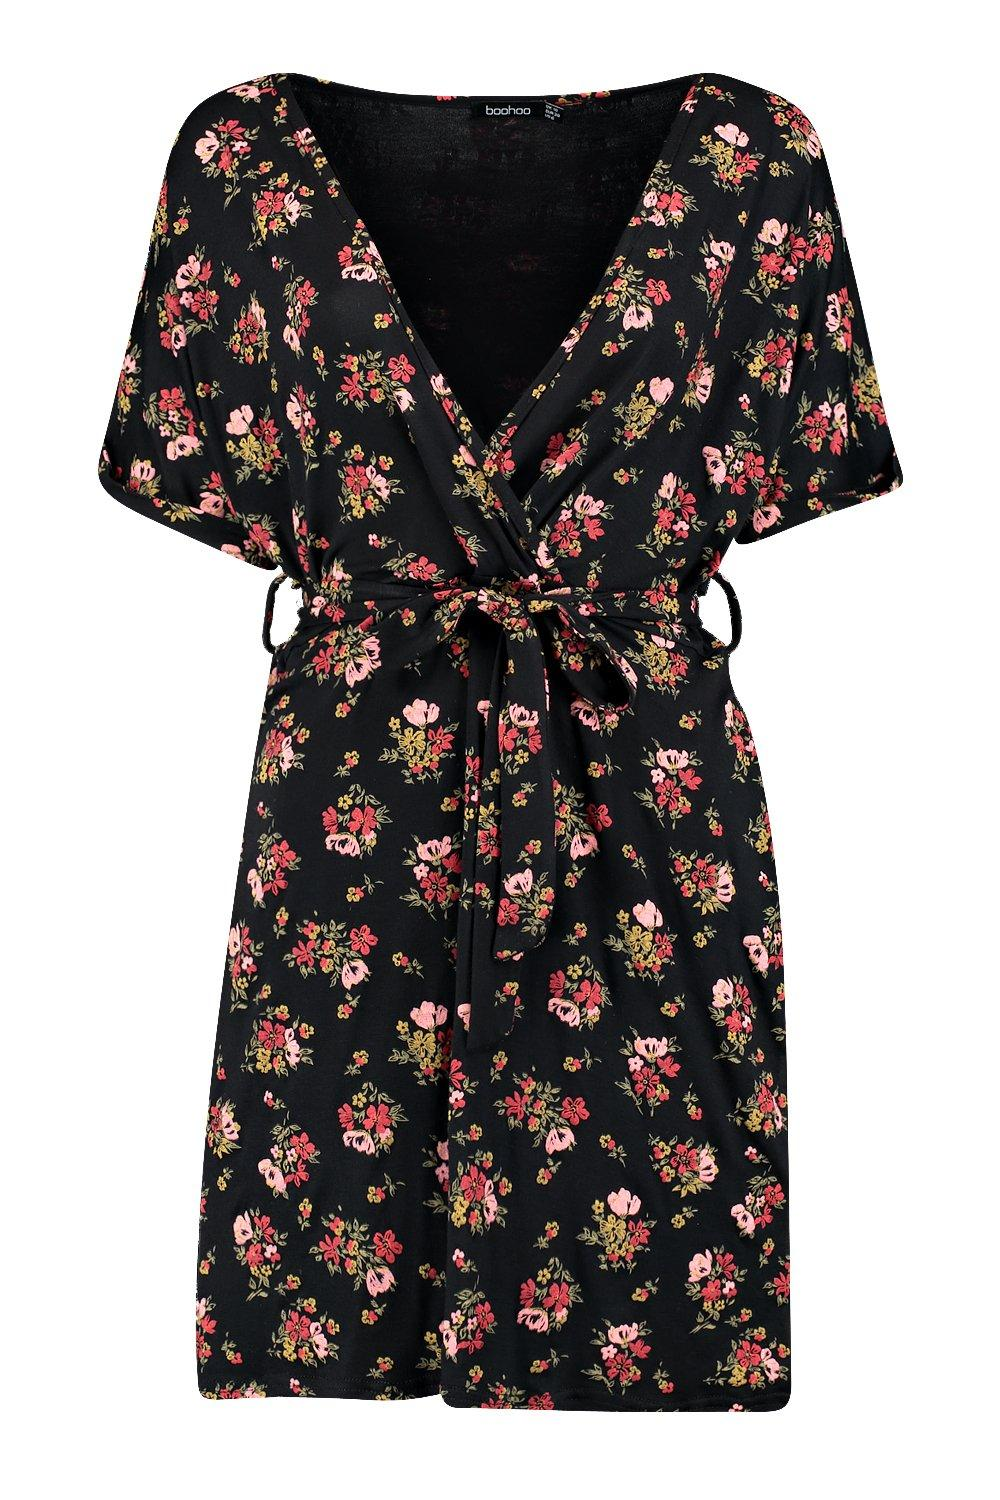 8b6cb0cee020 Boohoo Womens Violette Floral Tie Waist Wrap Tea Dress | eBay